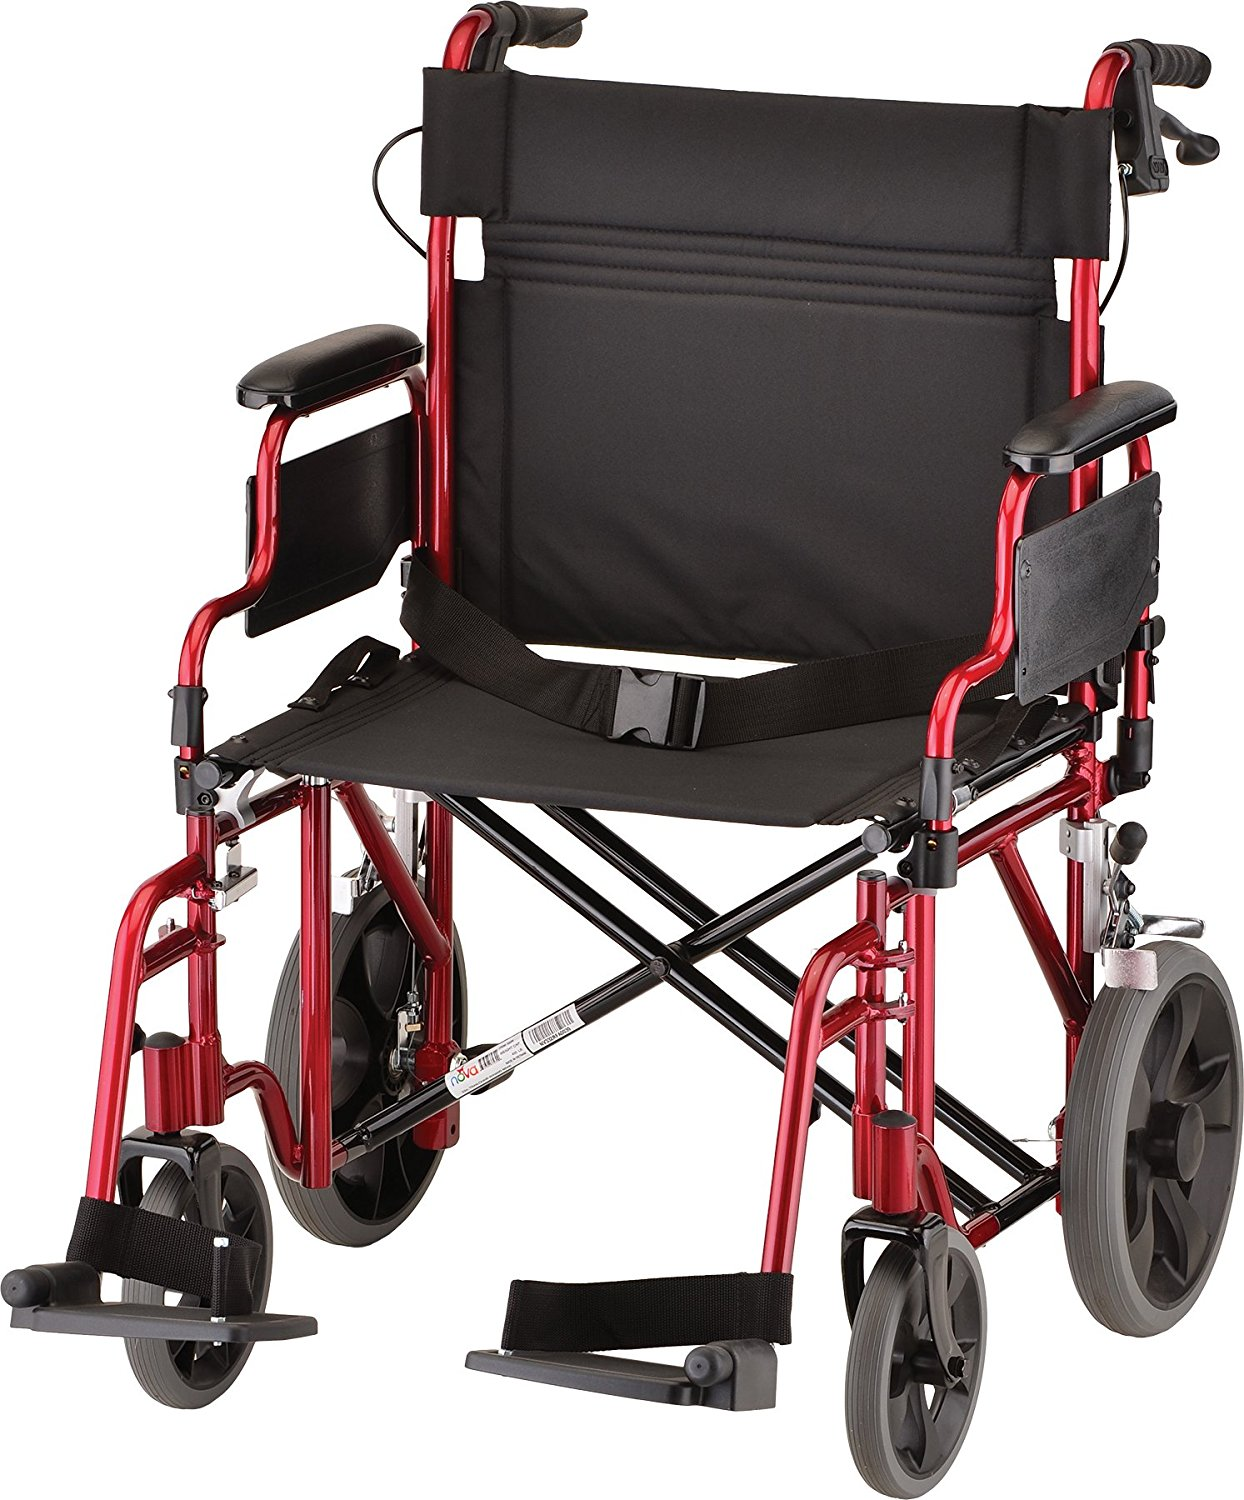 NOVA Heavy Duty Transport Wheelchair